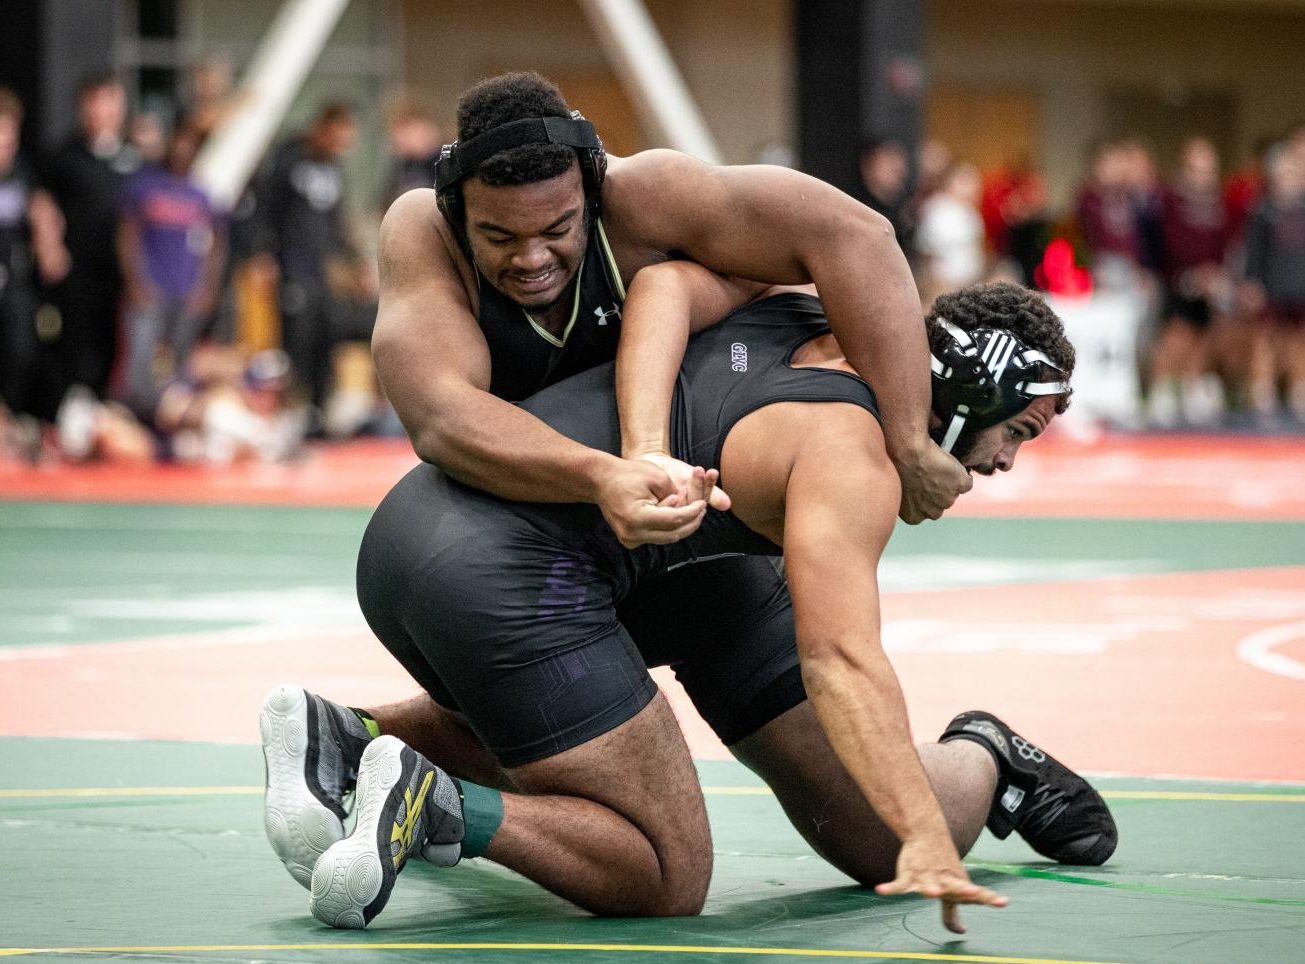 Kaleb Bryant takes on a competitor in the 285 pound weight-class at the Lindenwood Open on Satuday, Nov. 23.